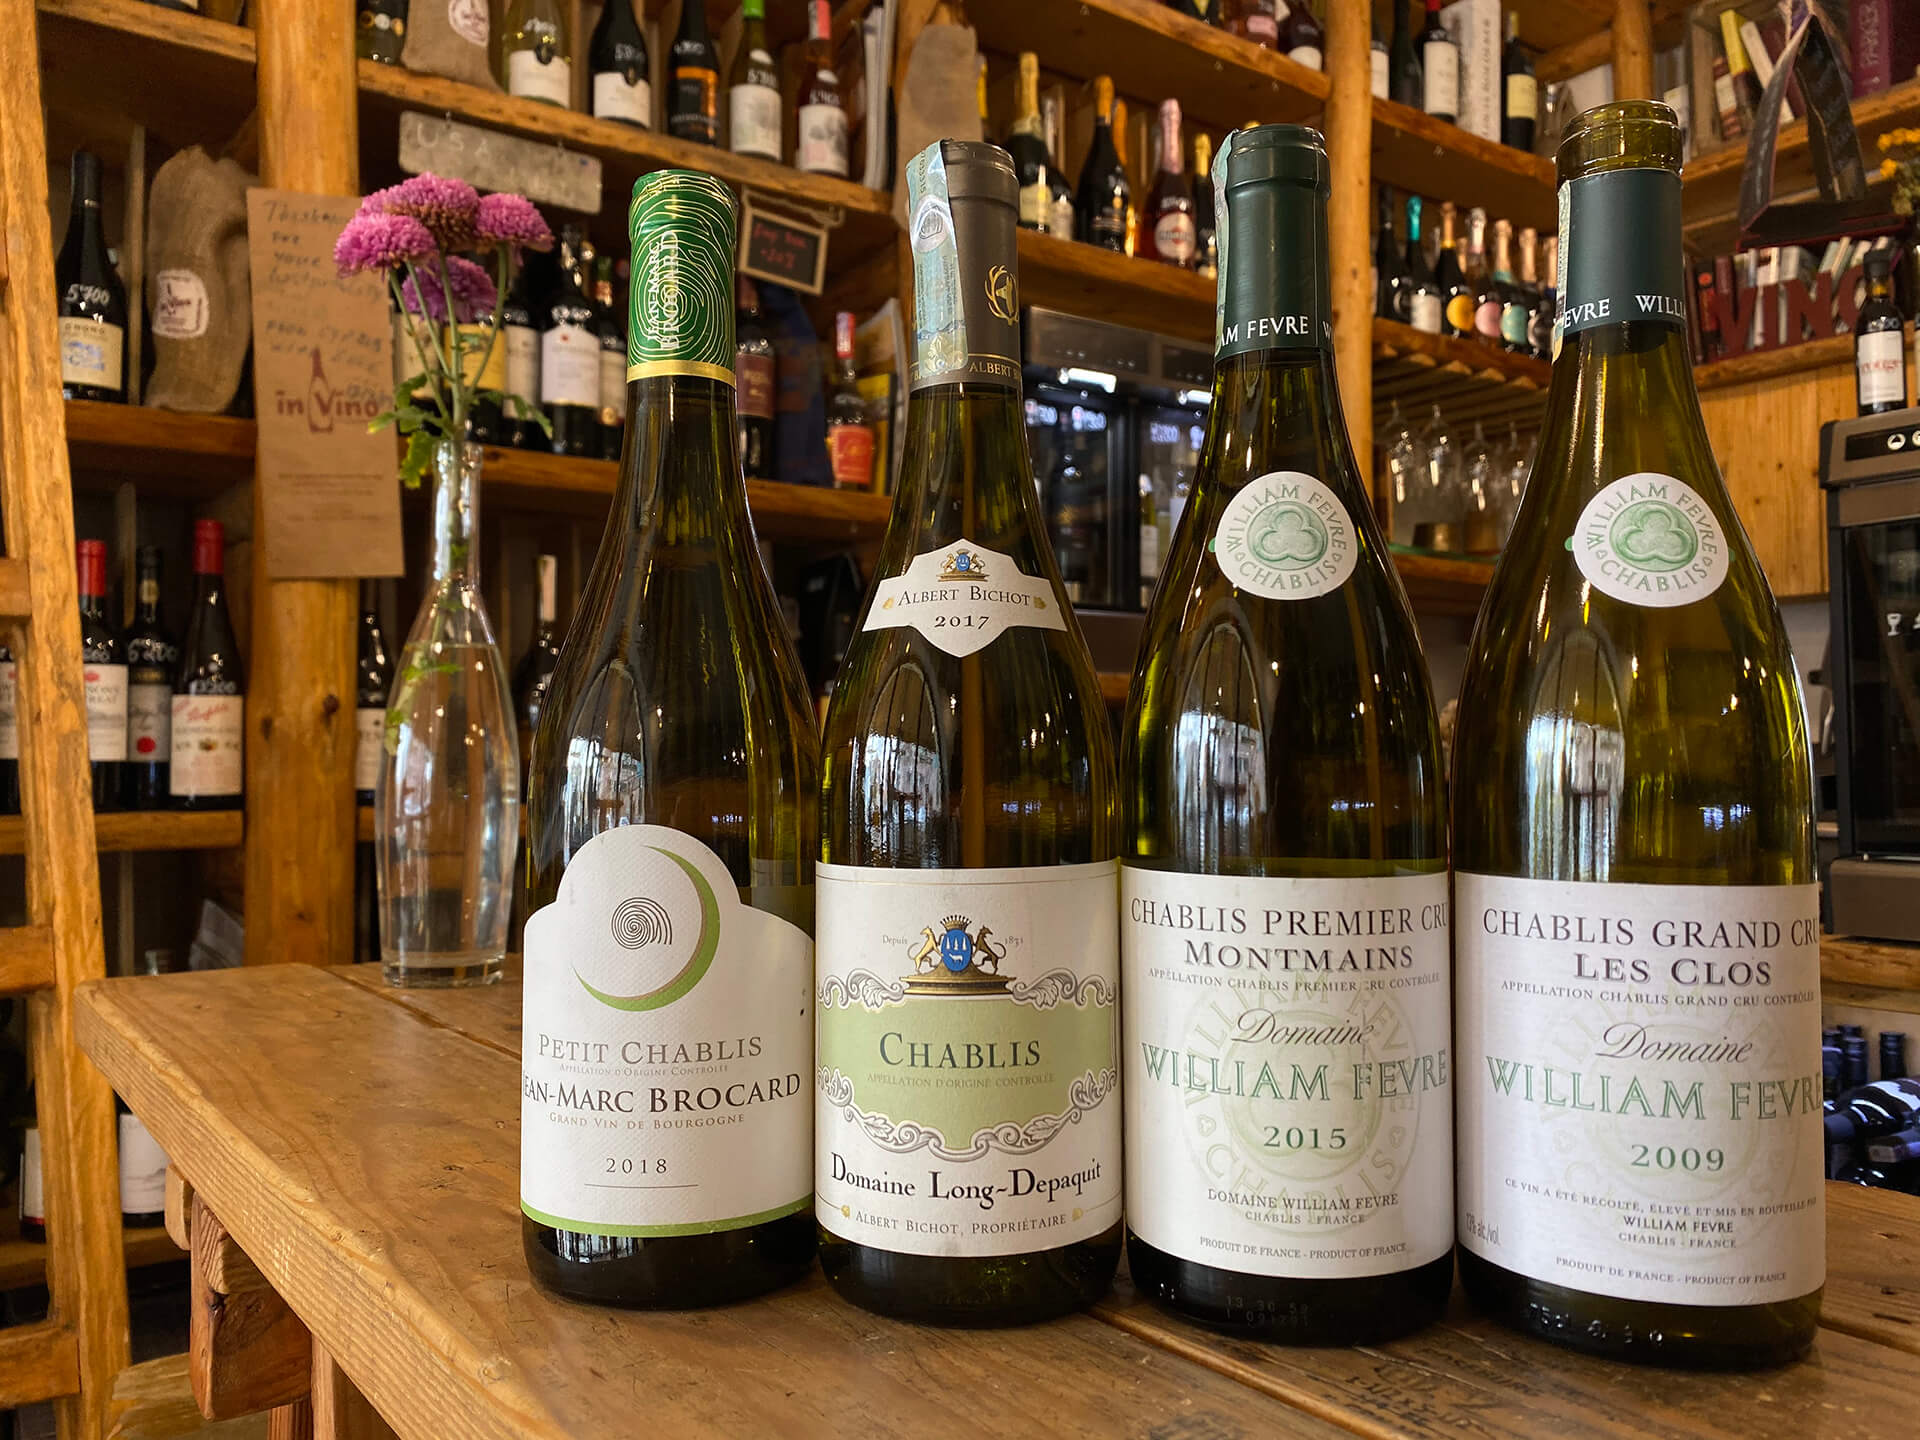 White Wines Of France: Chablis, Burgundy